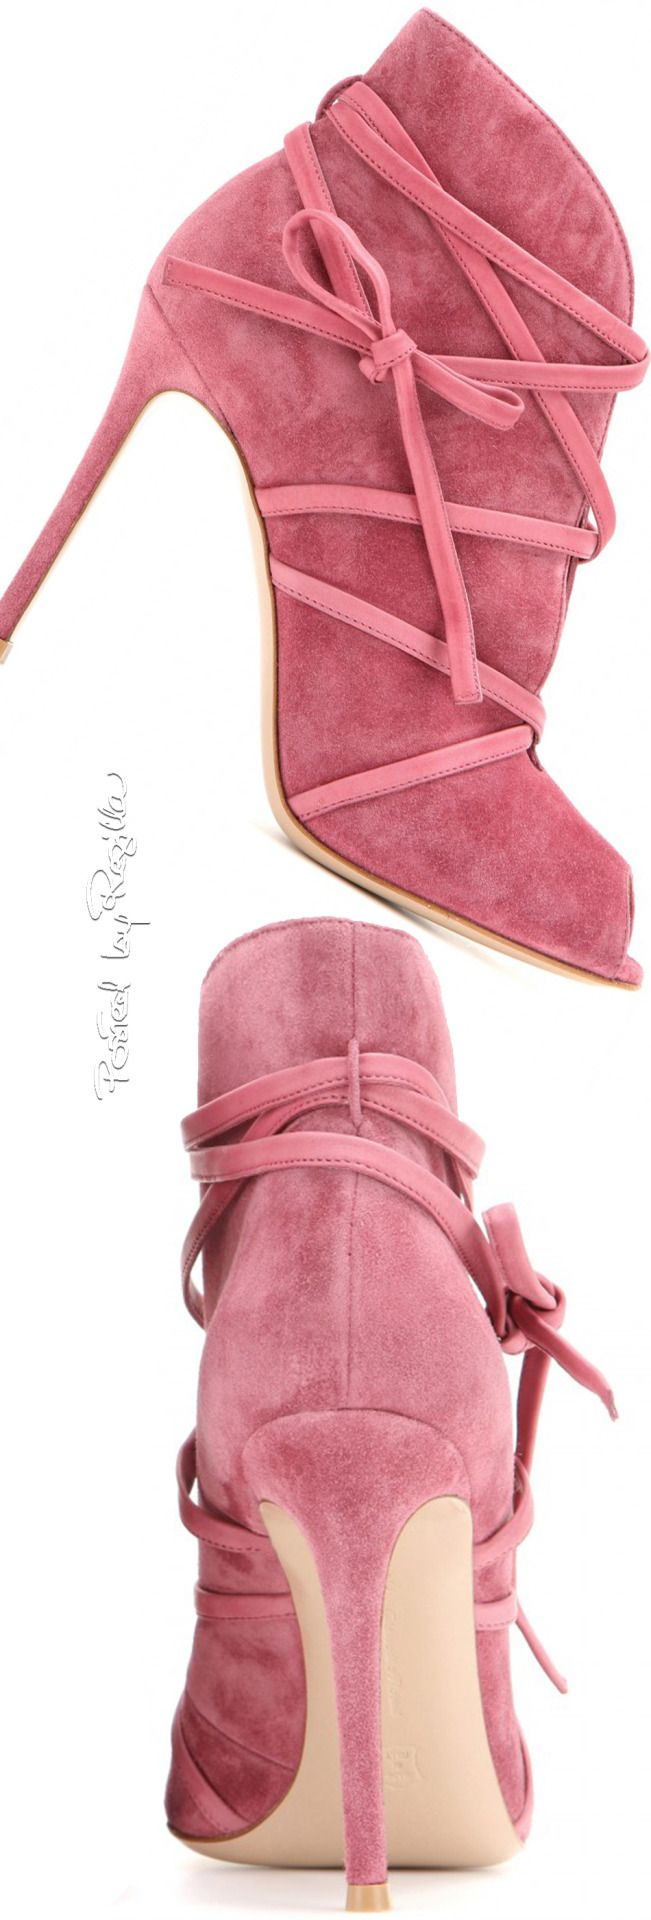 Gianvito Rossi ~ Pink Suede Booties 2015/Dorothy Johnson. Follow me‼️ Pinterest @divinewanderer2